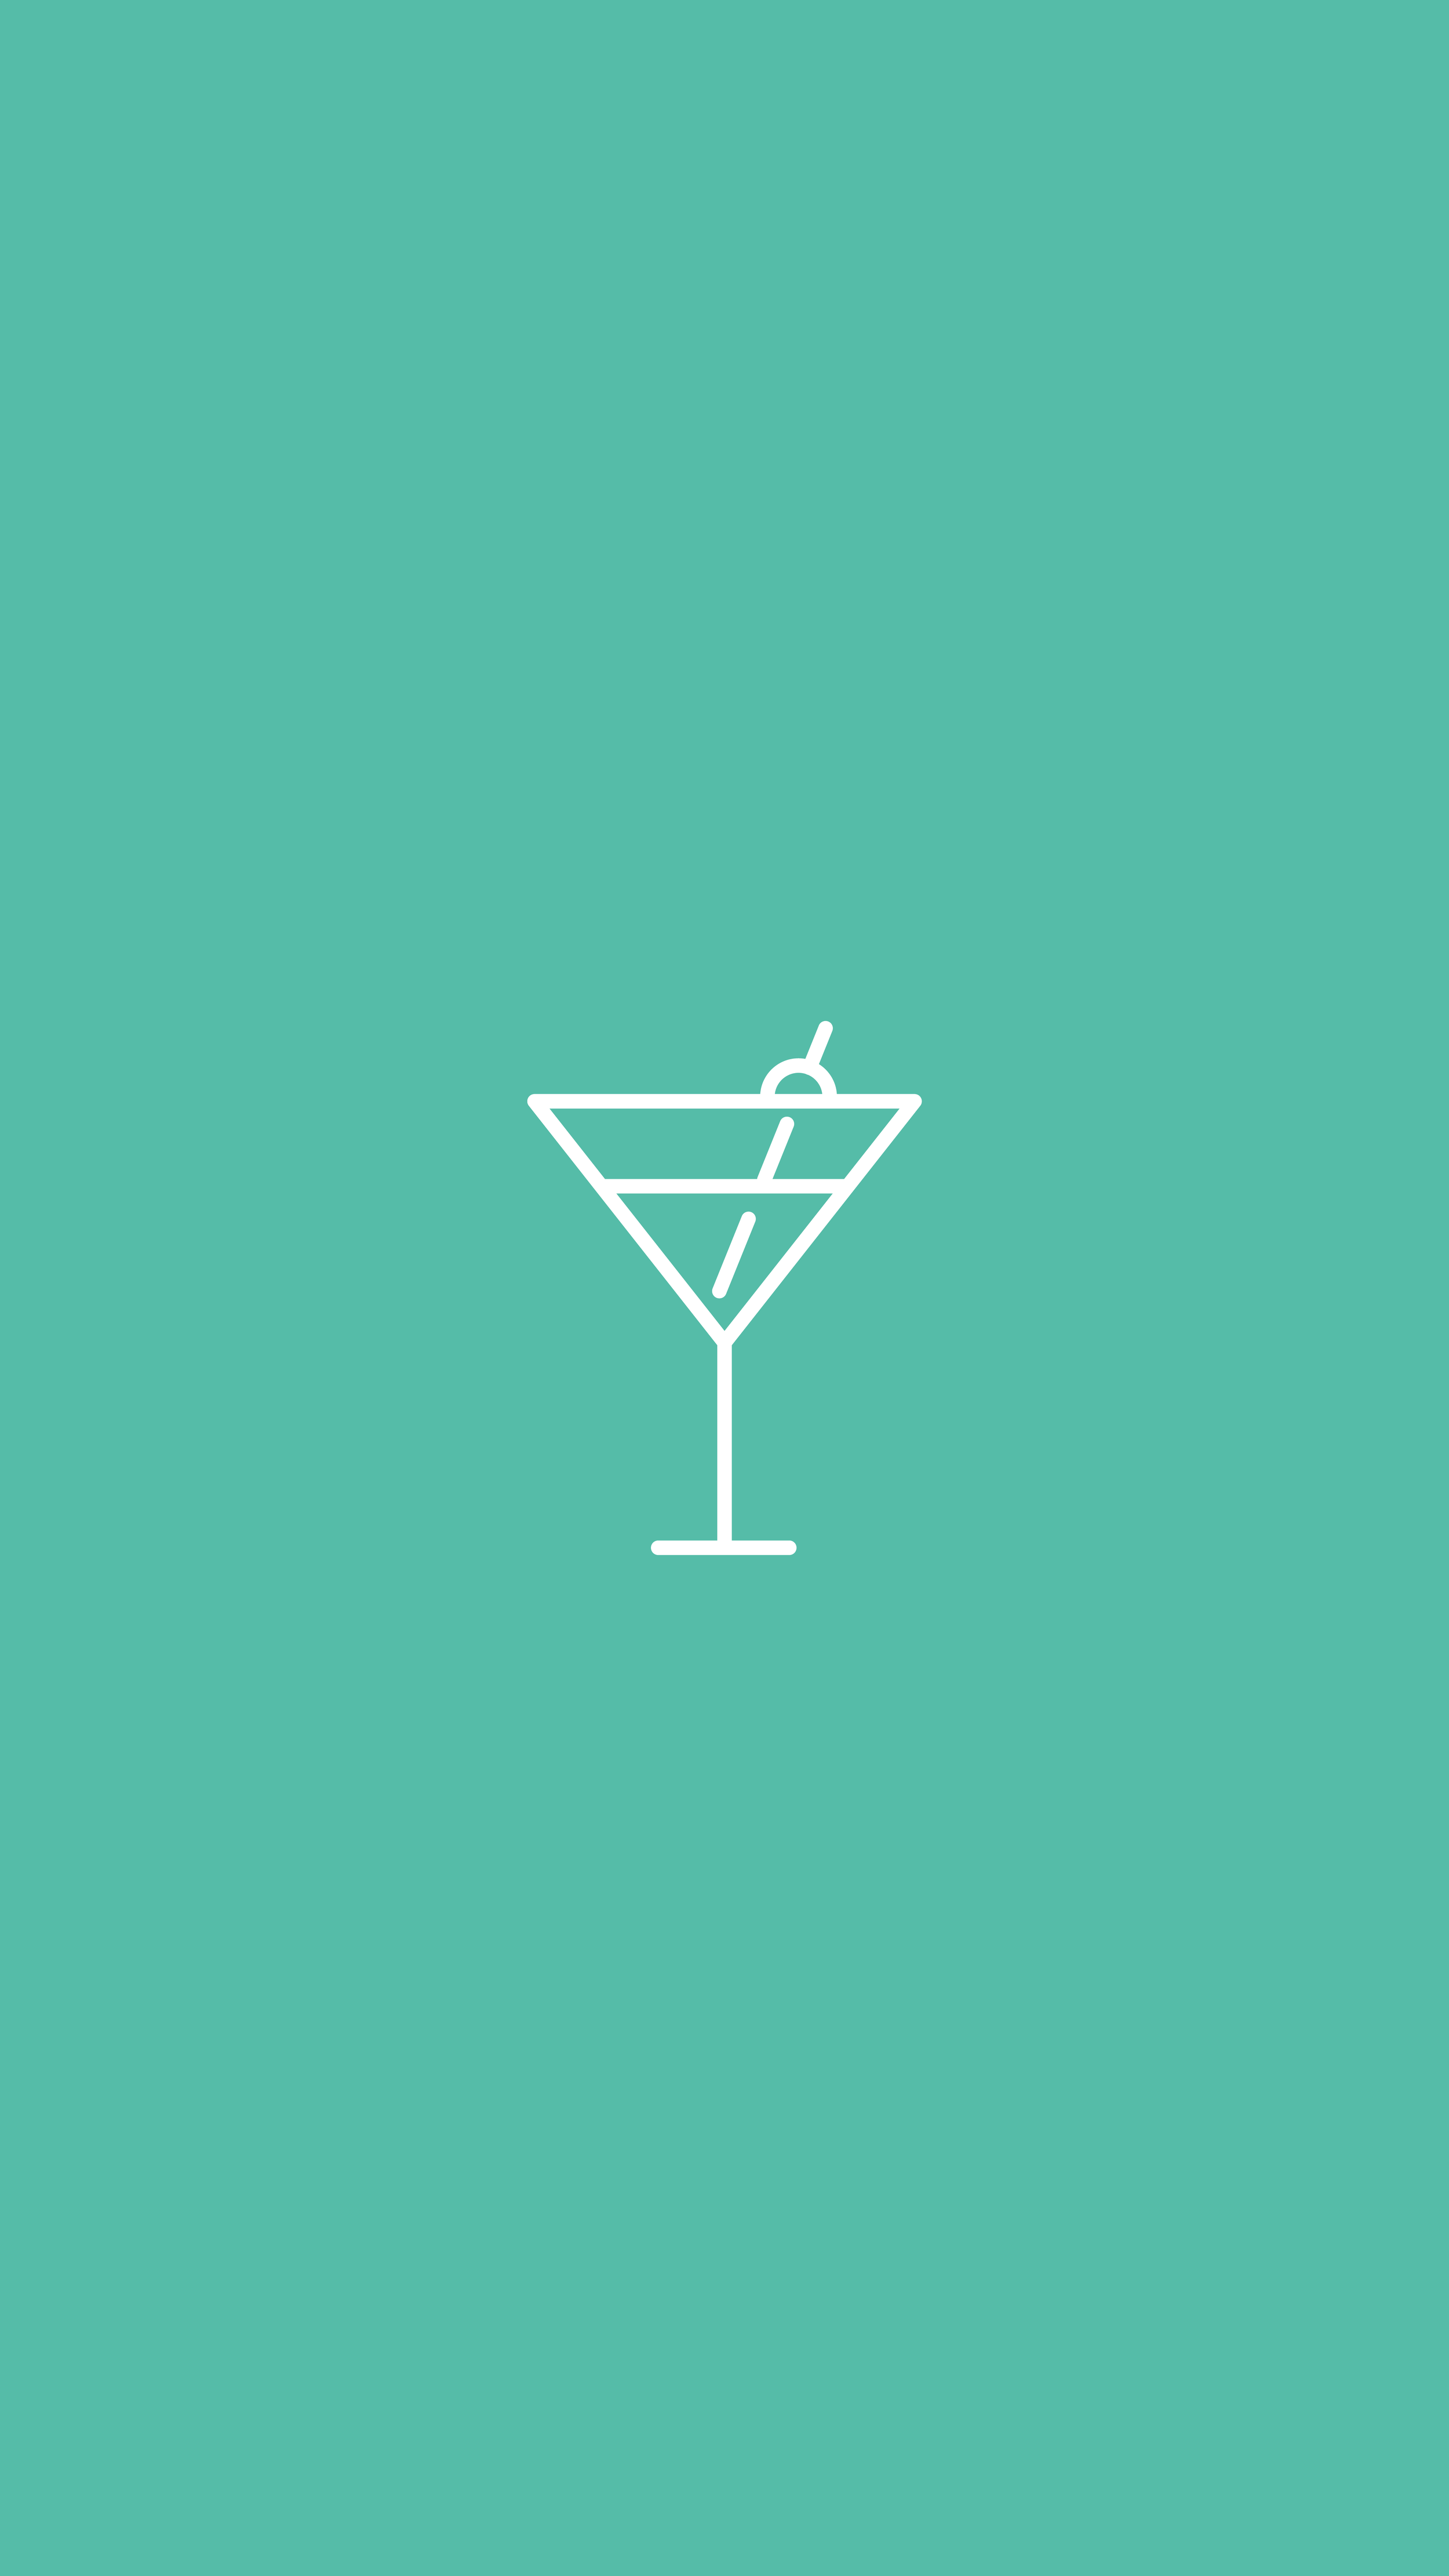 Cocktail, Drink, Alcohol